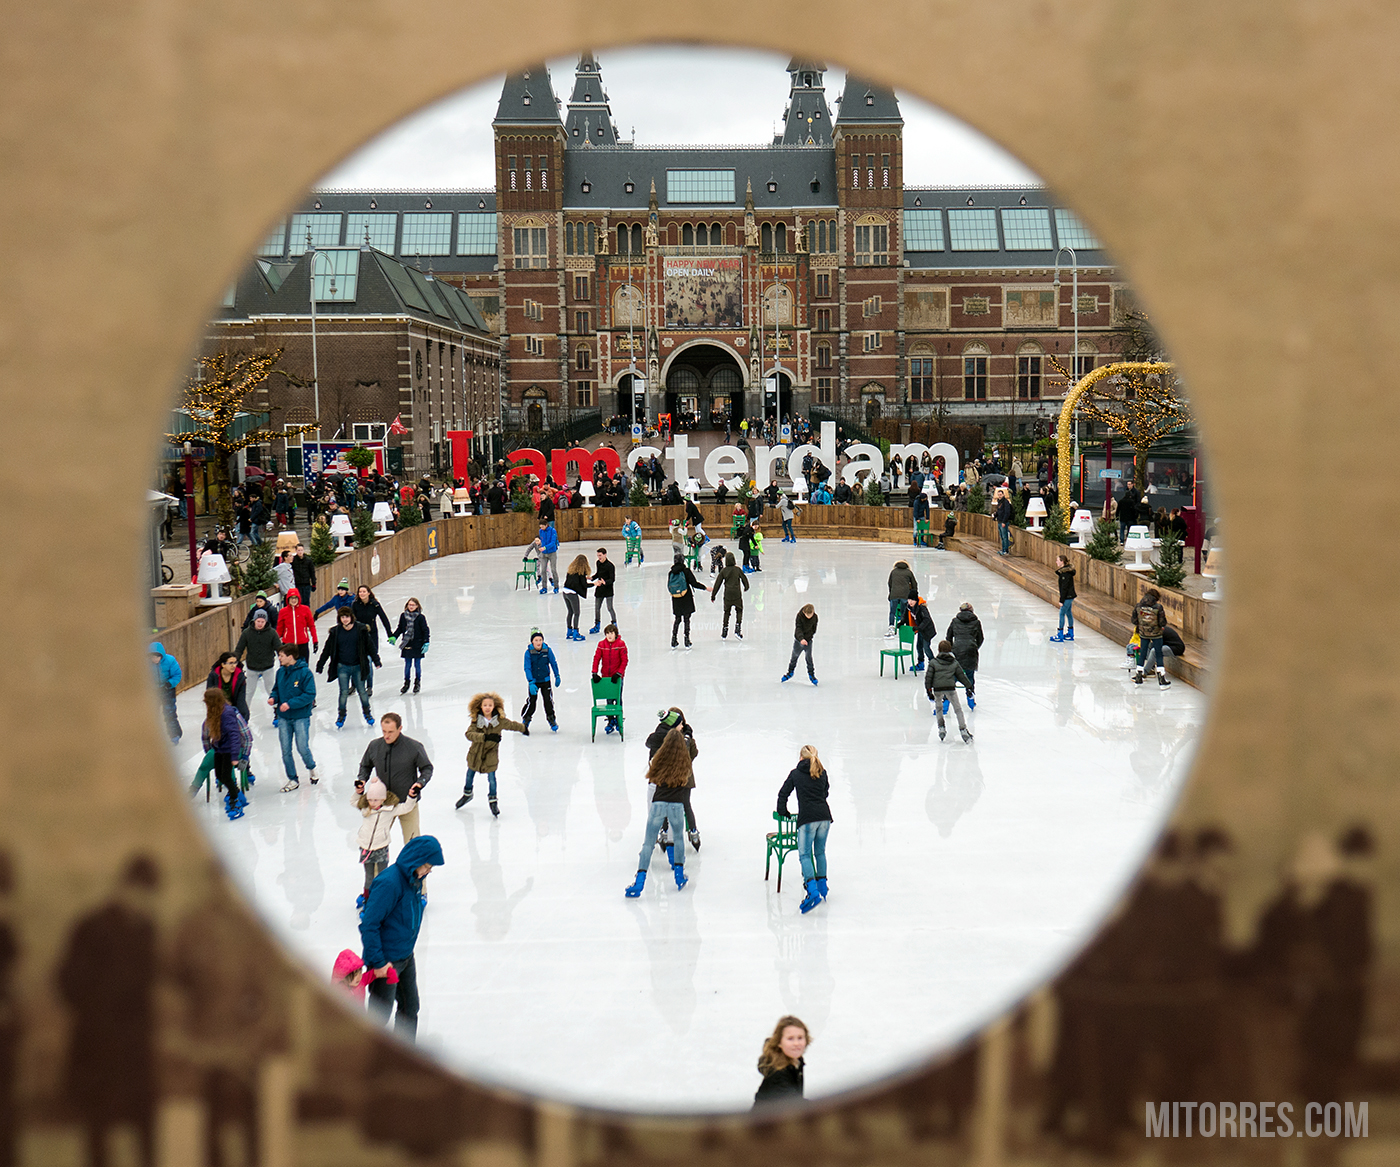 Ice skating rink by the I AMSTERDAM sign.